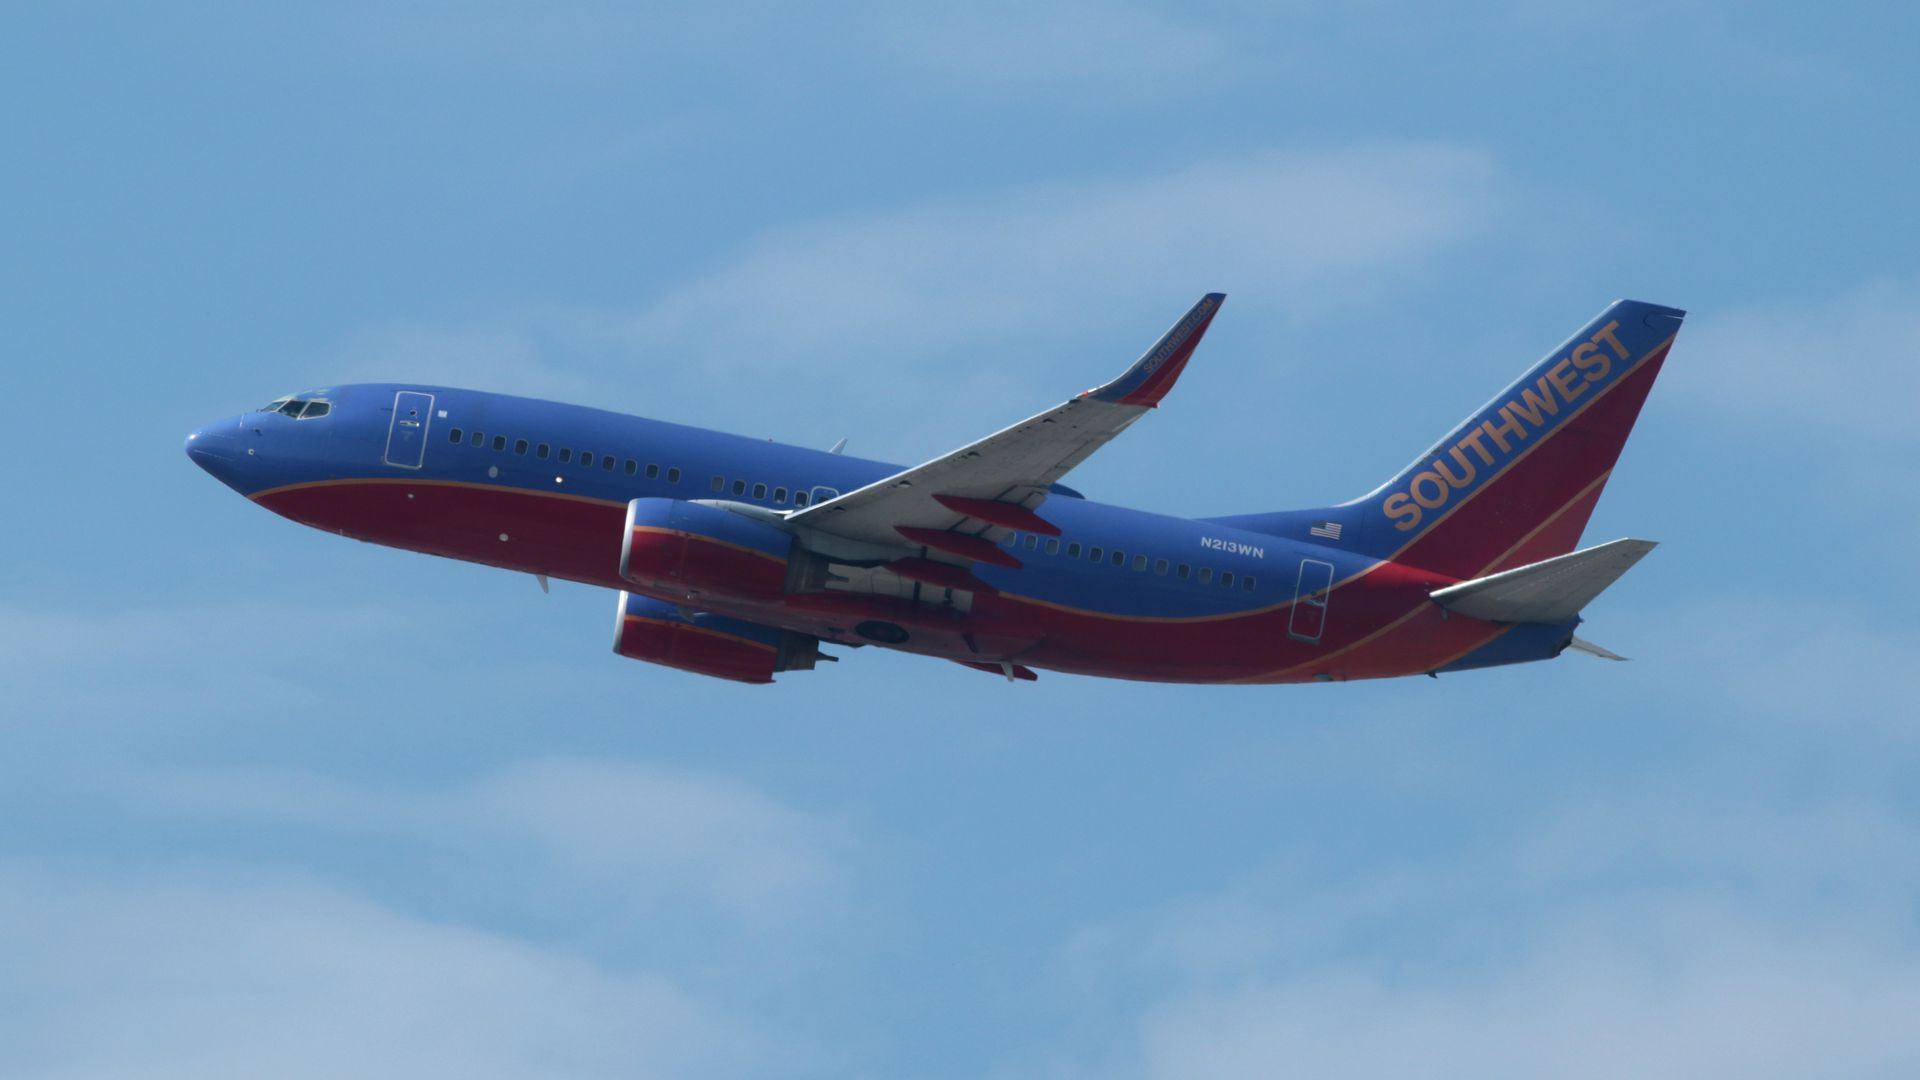 A Southwest Airlines plane in the sky